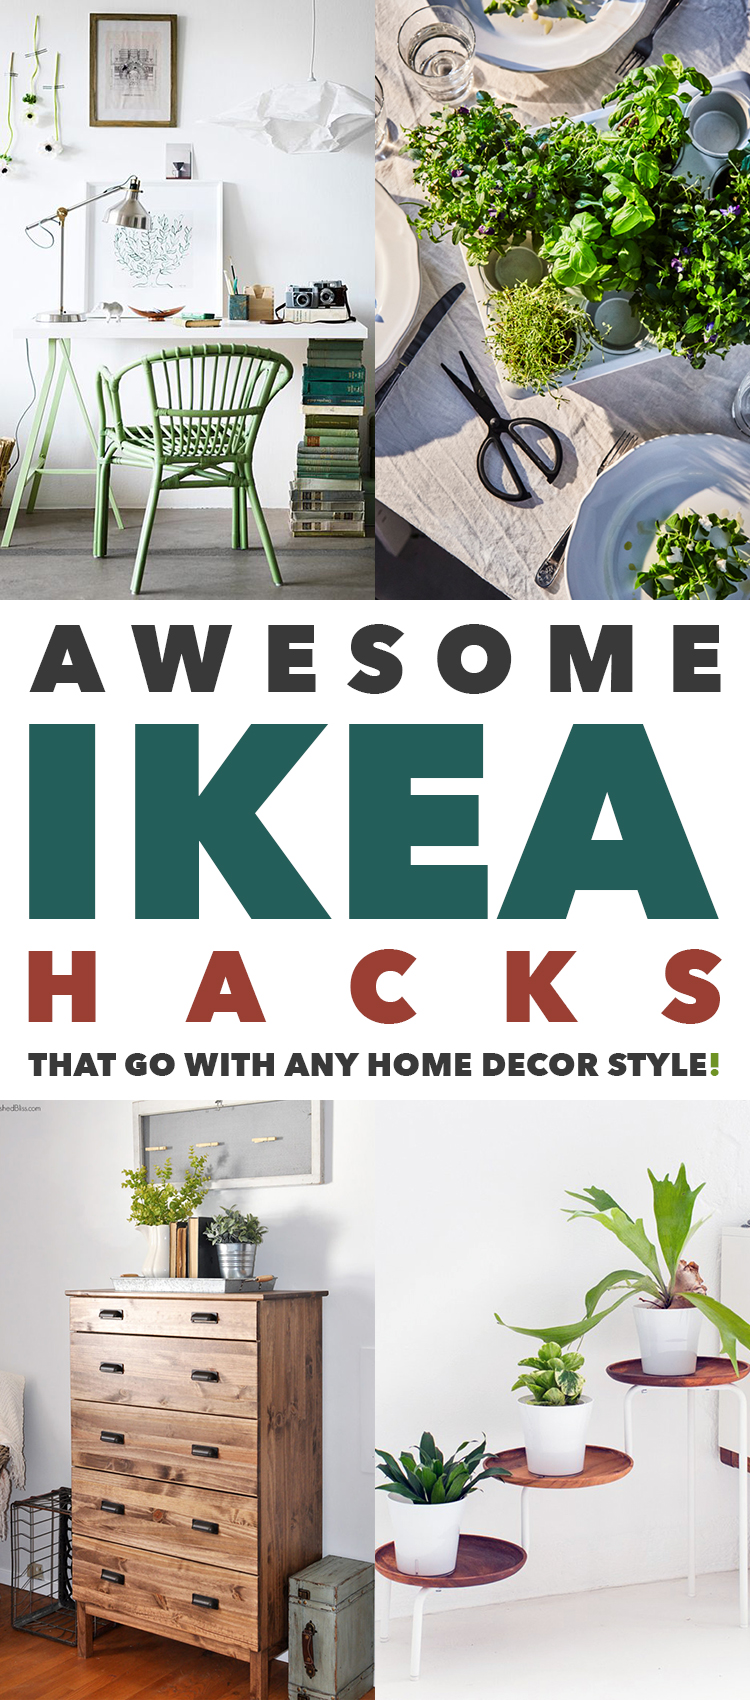 Awesome IKEA Hacks That Go With ANY Home Decor Style - The